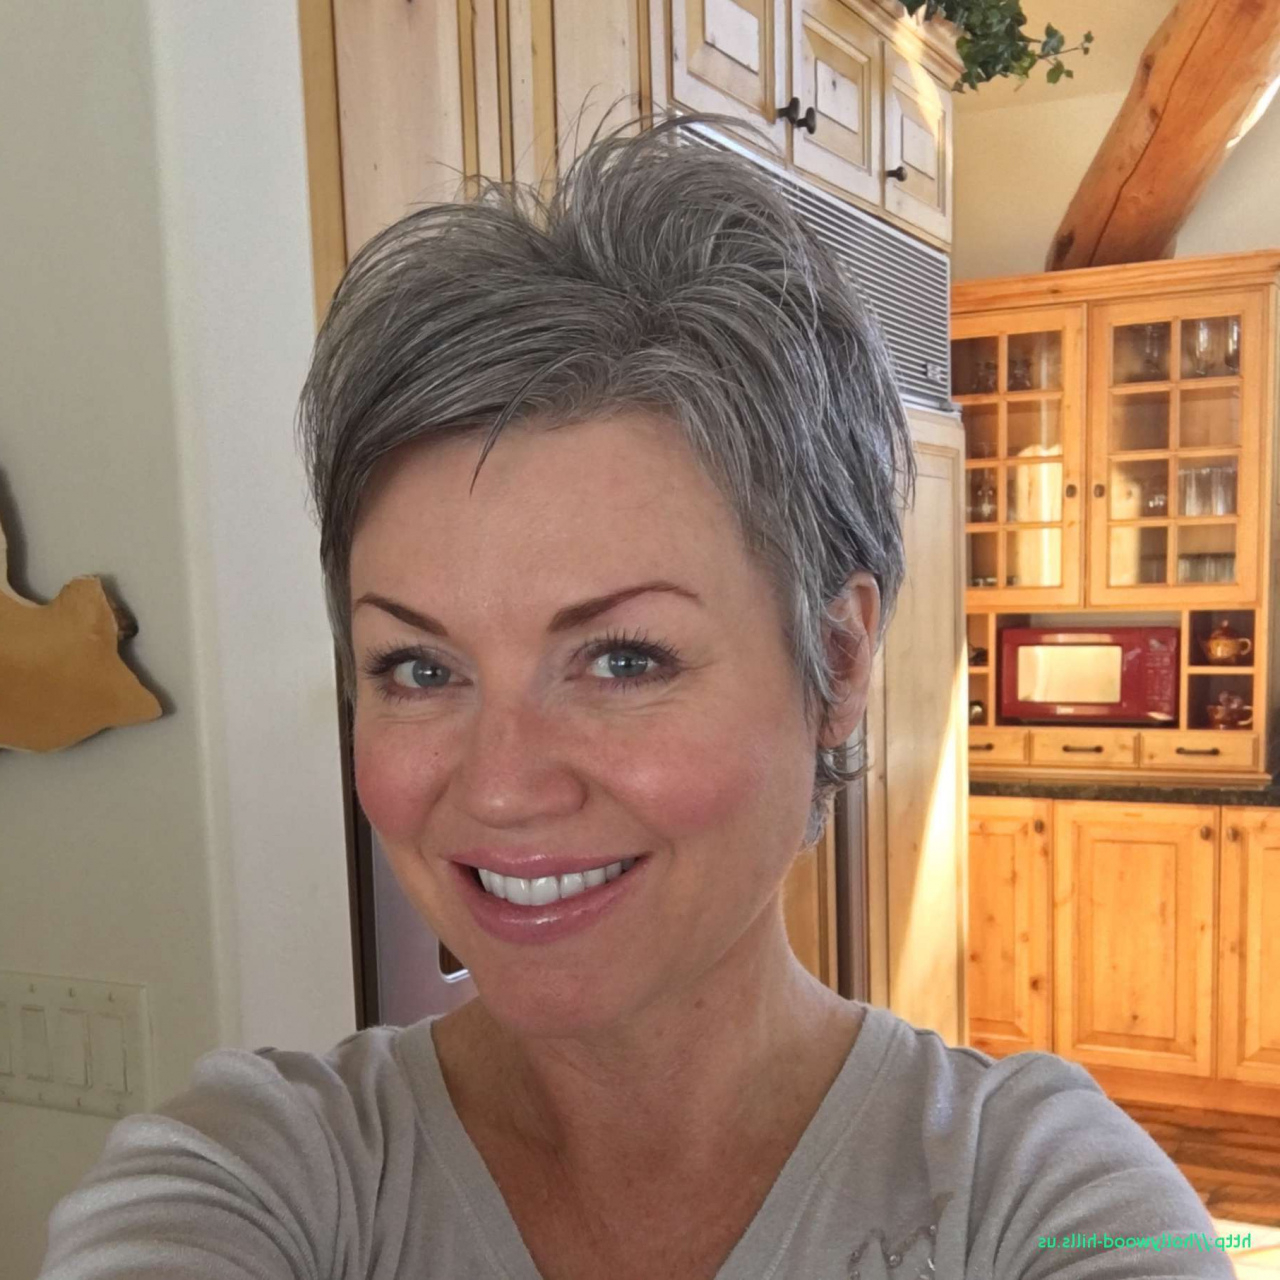 20 Short Hairstyles For Gray Hair Beautiful Hairstyles For Grey Hair Regarding Gray Hair Short Hairstyles (View 18 of 25)